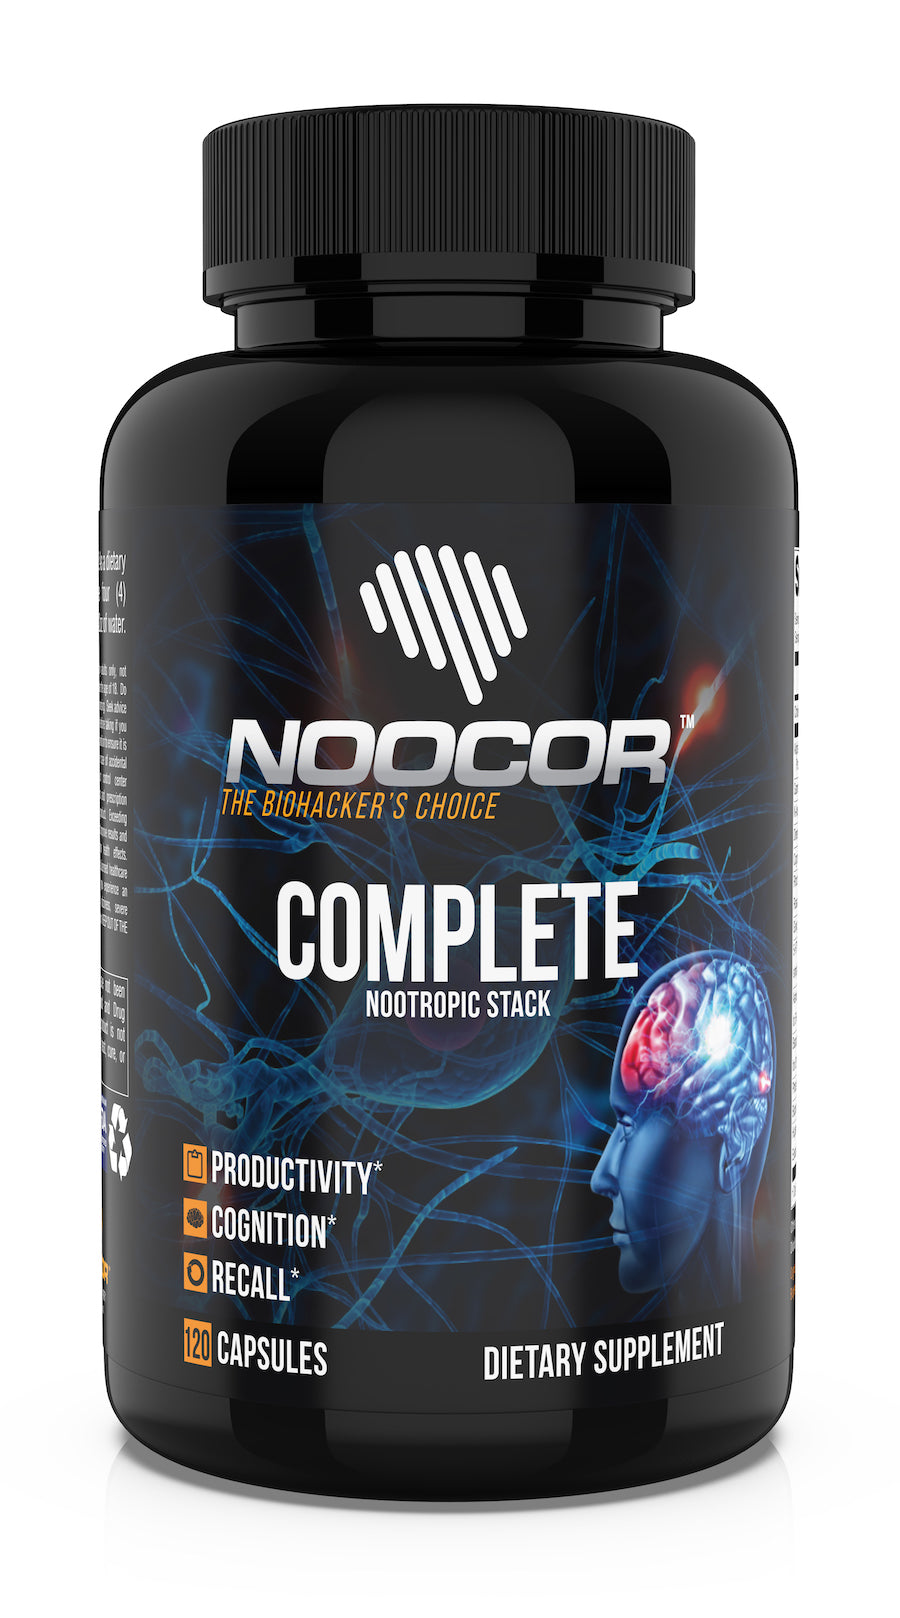 Noocor Complete Nootropic Stack - 120ct Bottle (NEW!)